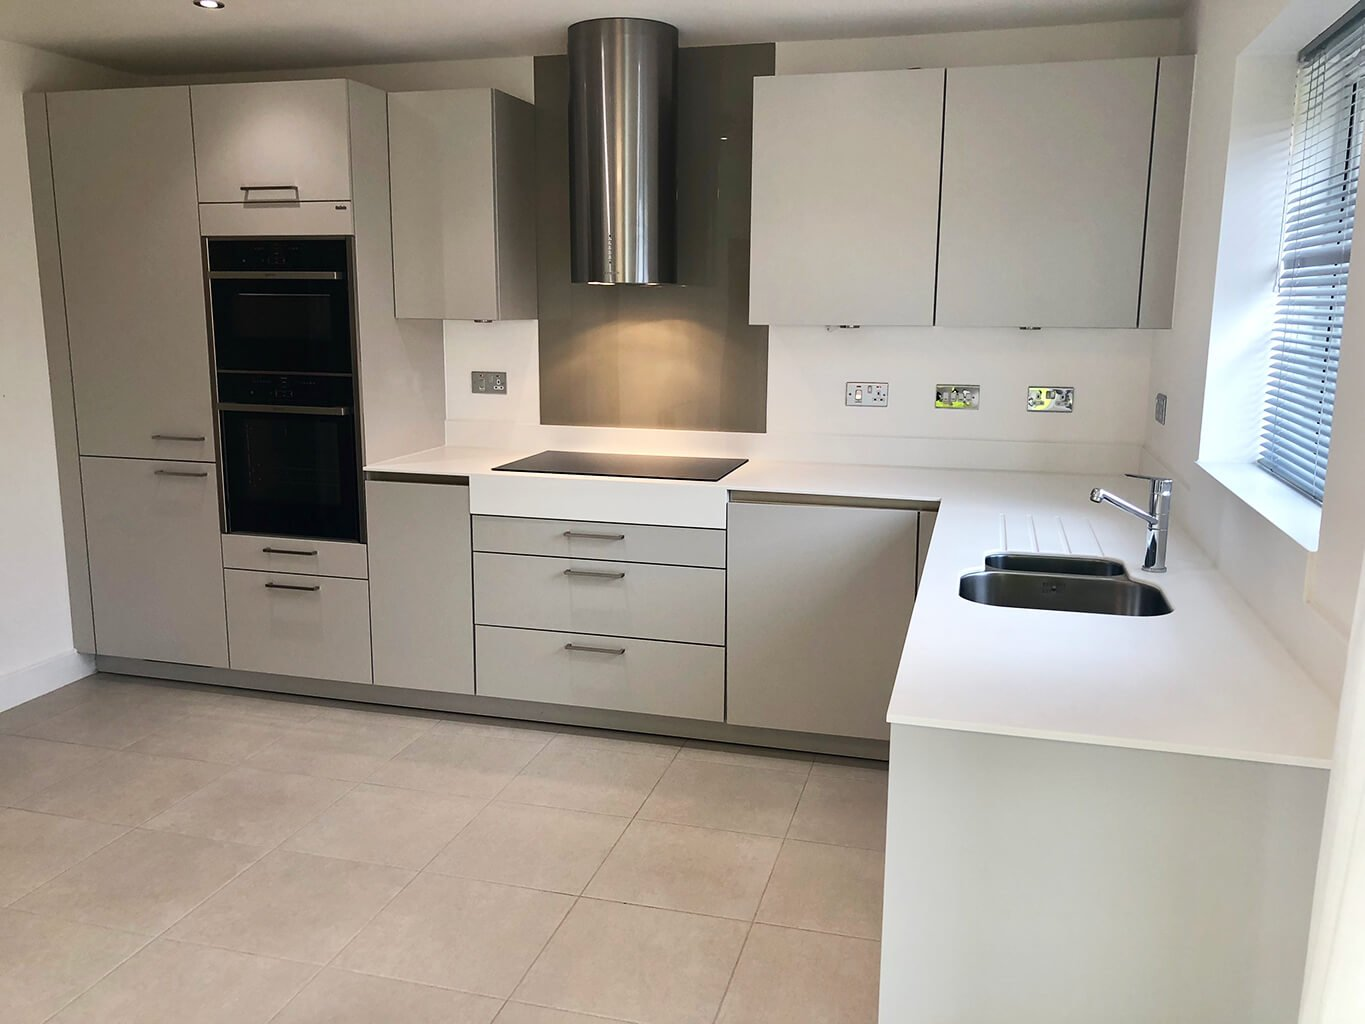 Brearley kitchen, plot 4